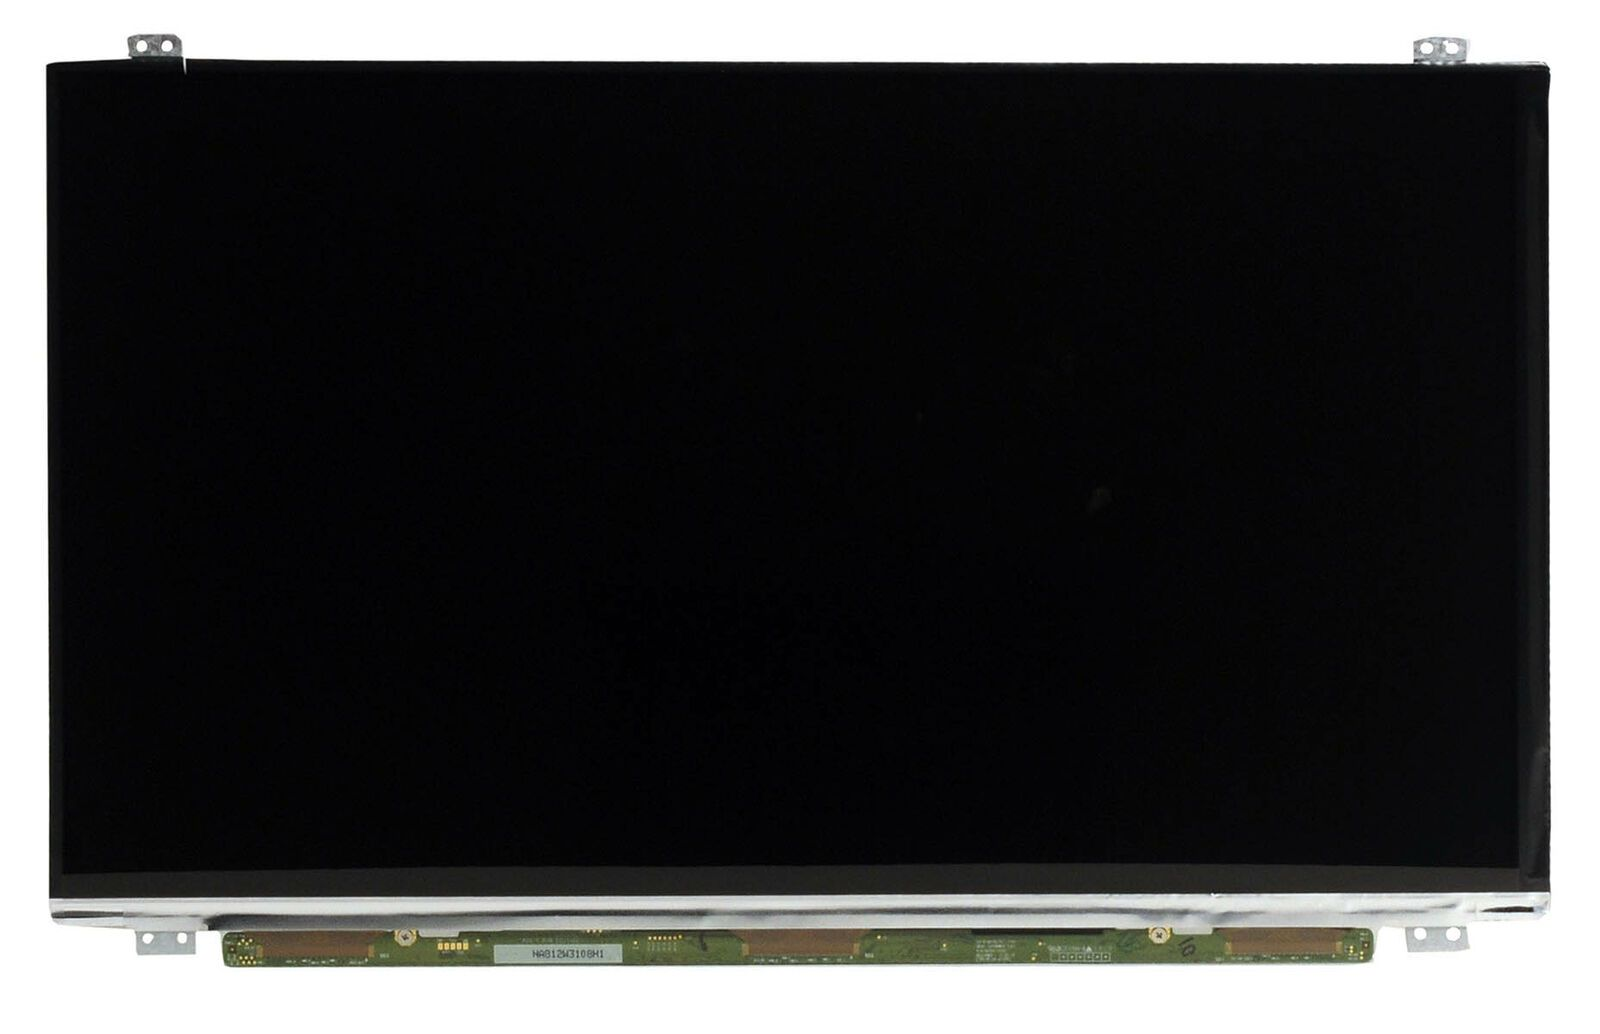 Tela 15.6 Led Slim Para Sony Vaio Sve151j11x L M W  1366x768 40 pin - EASY HELP NOTE